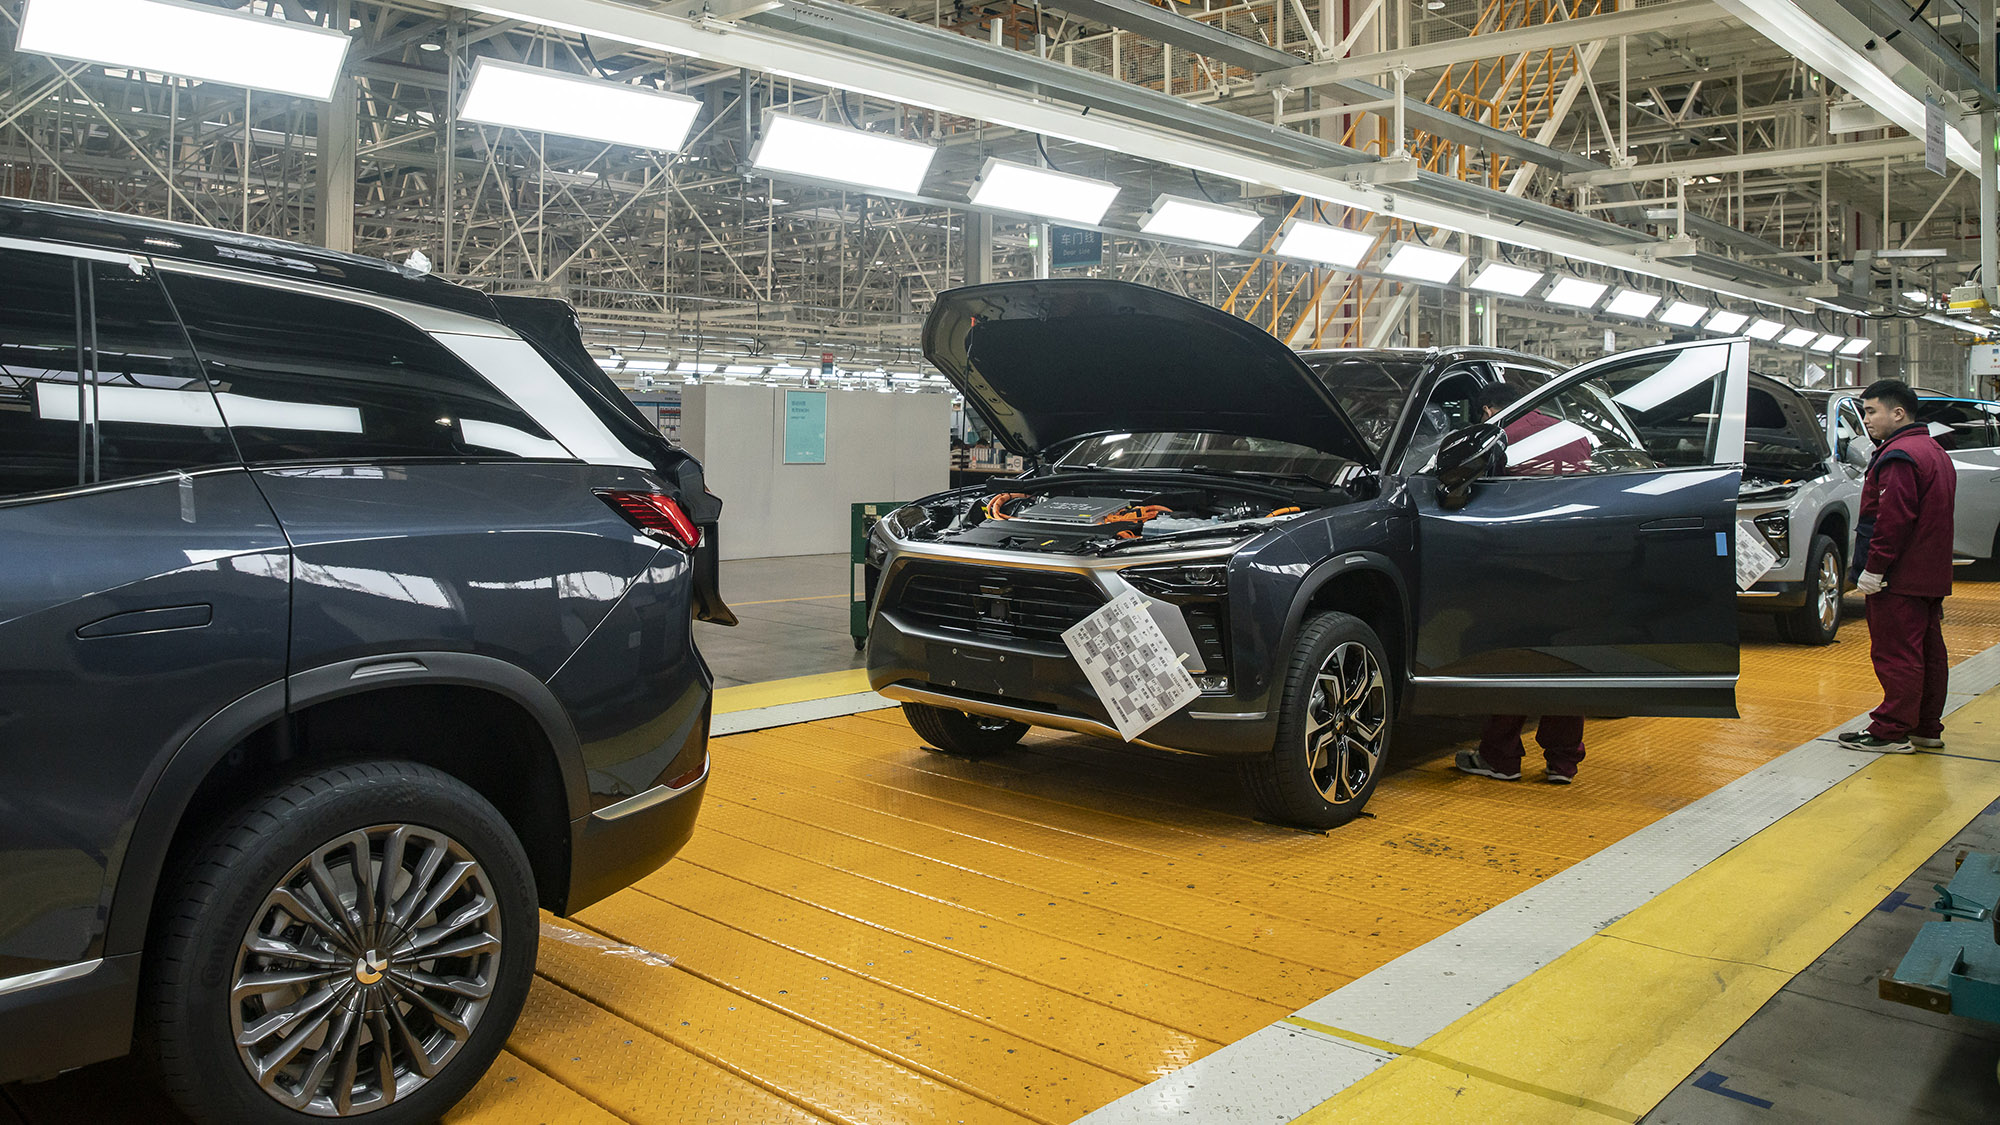 China's Nio wants to expand overseas, but there are roadblocks ahead